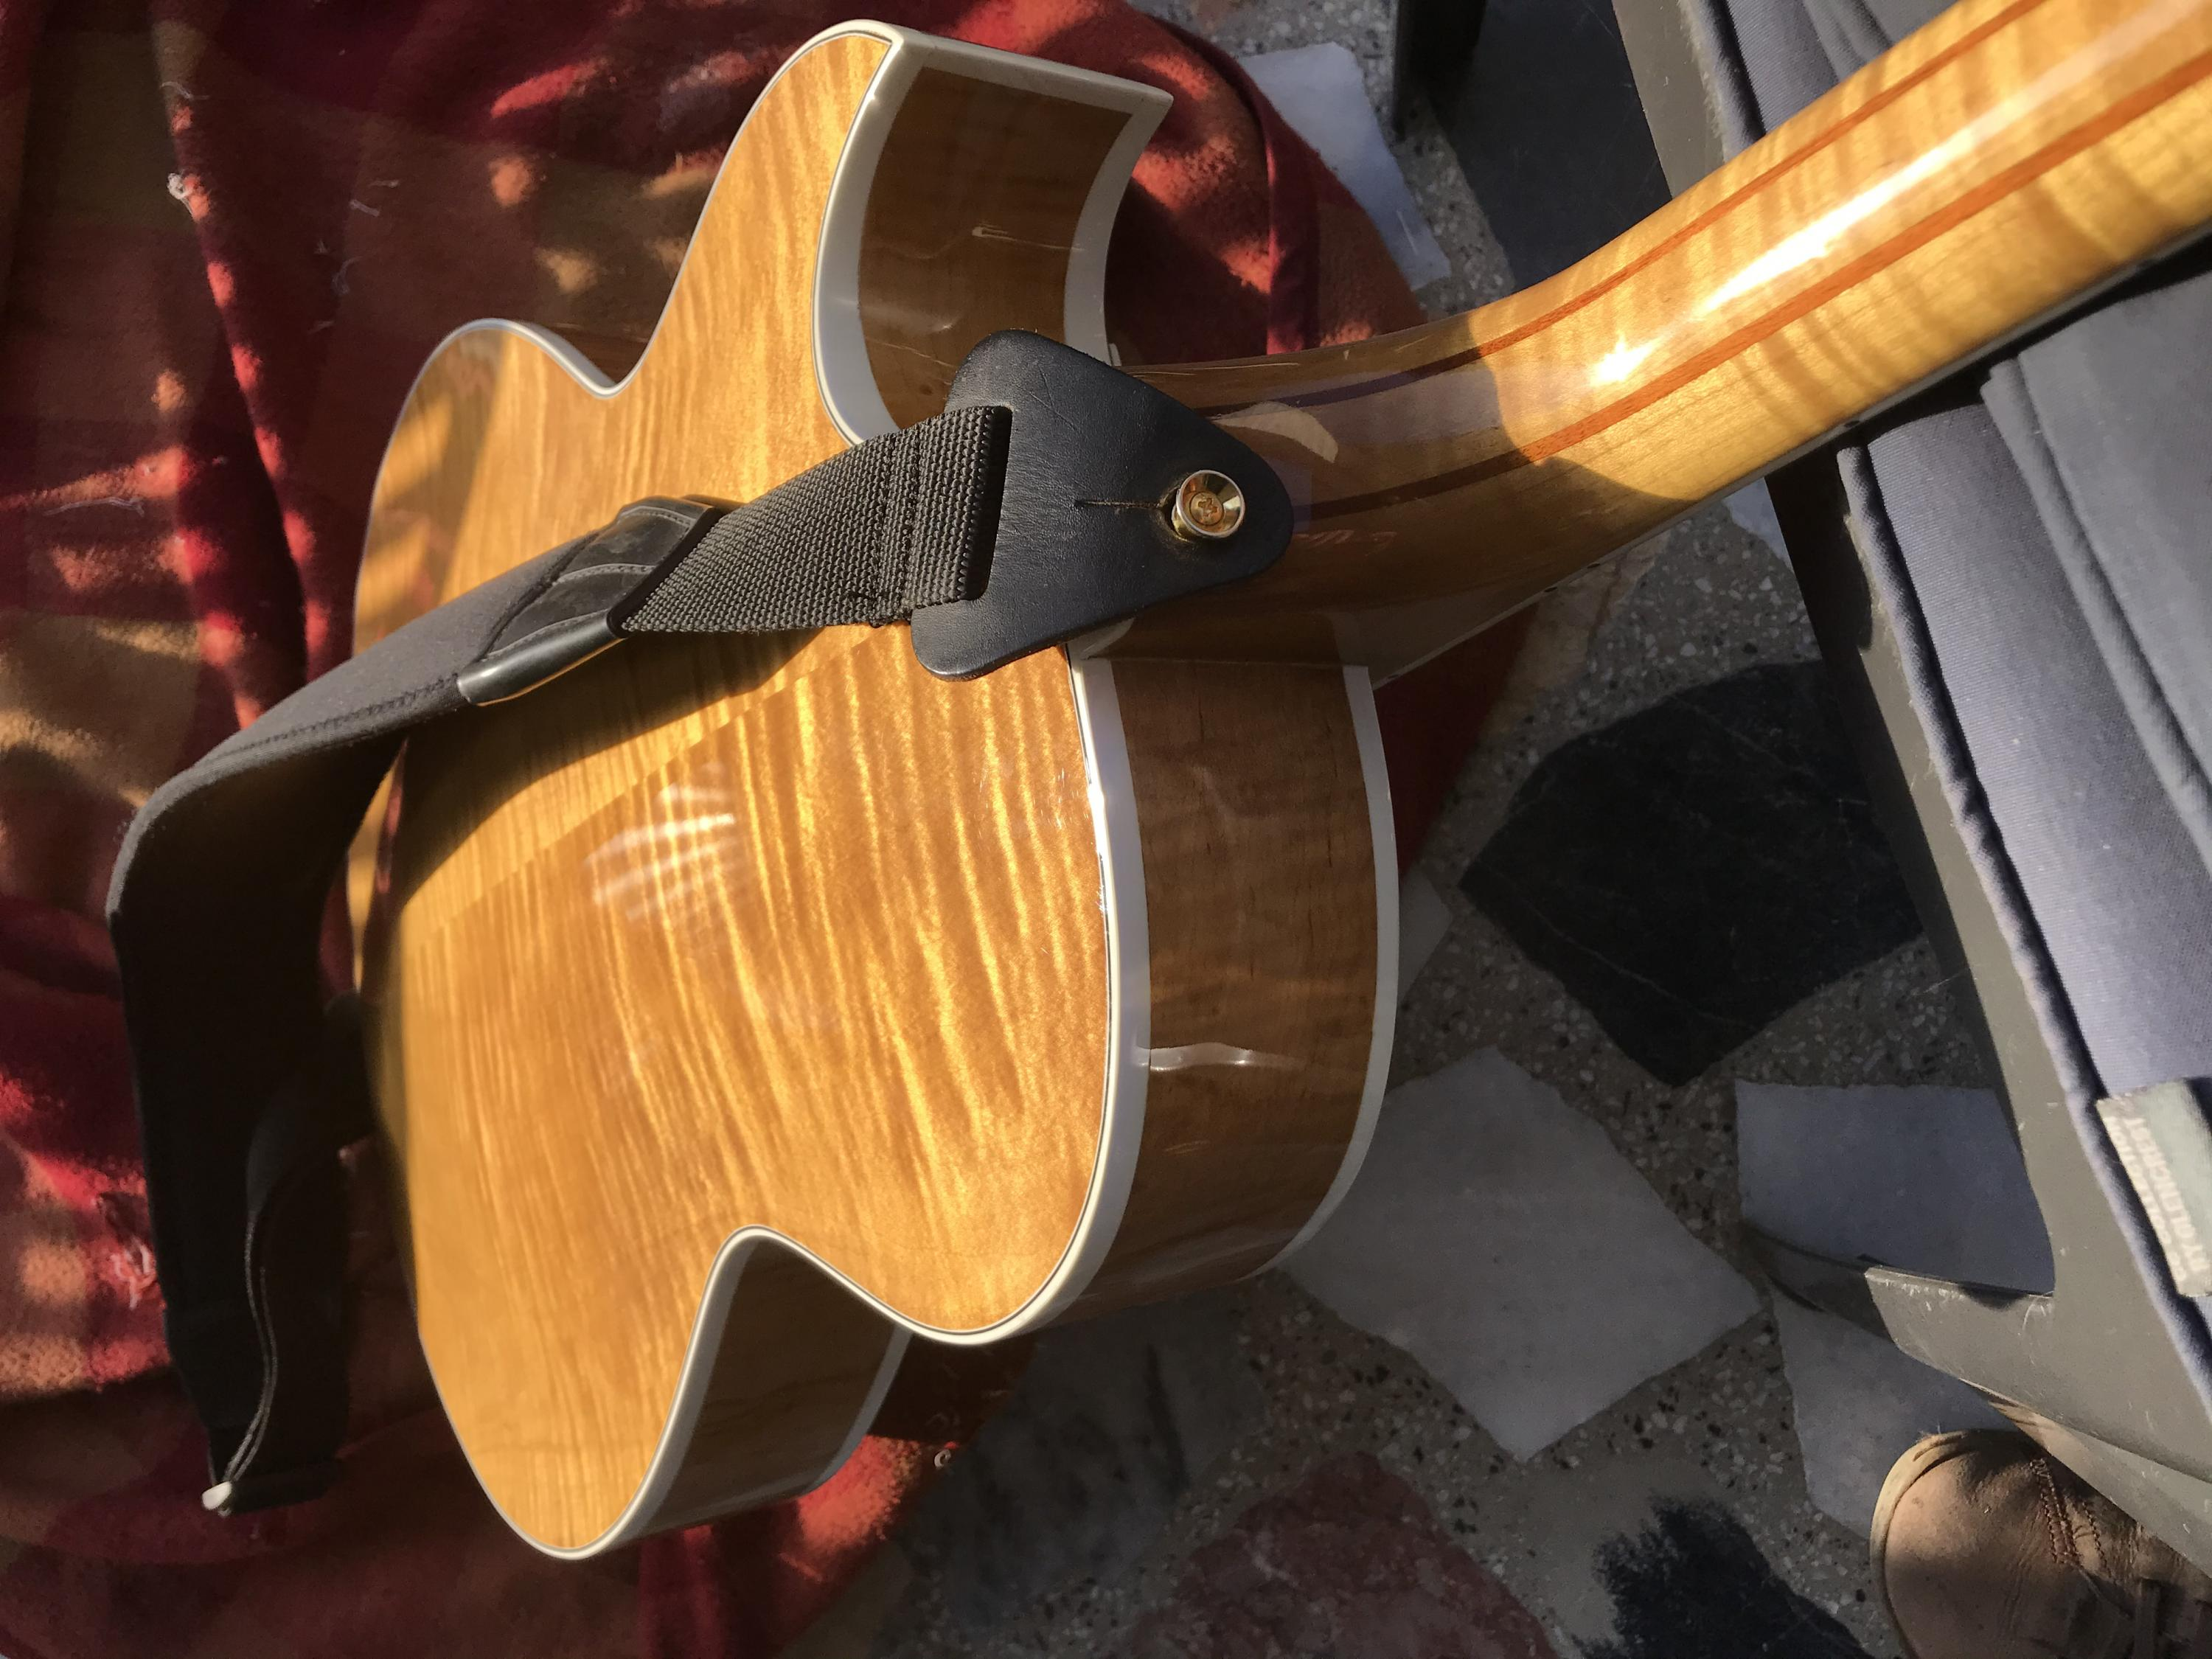 Two good things about Heritage guitars-img_6477-jpg